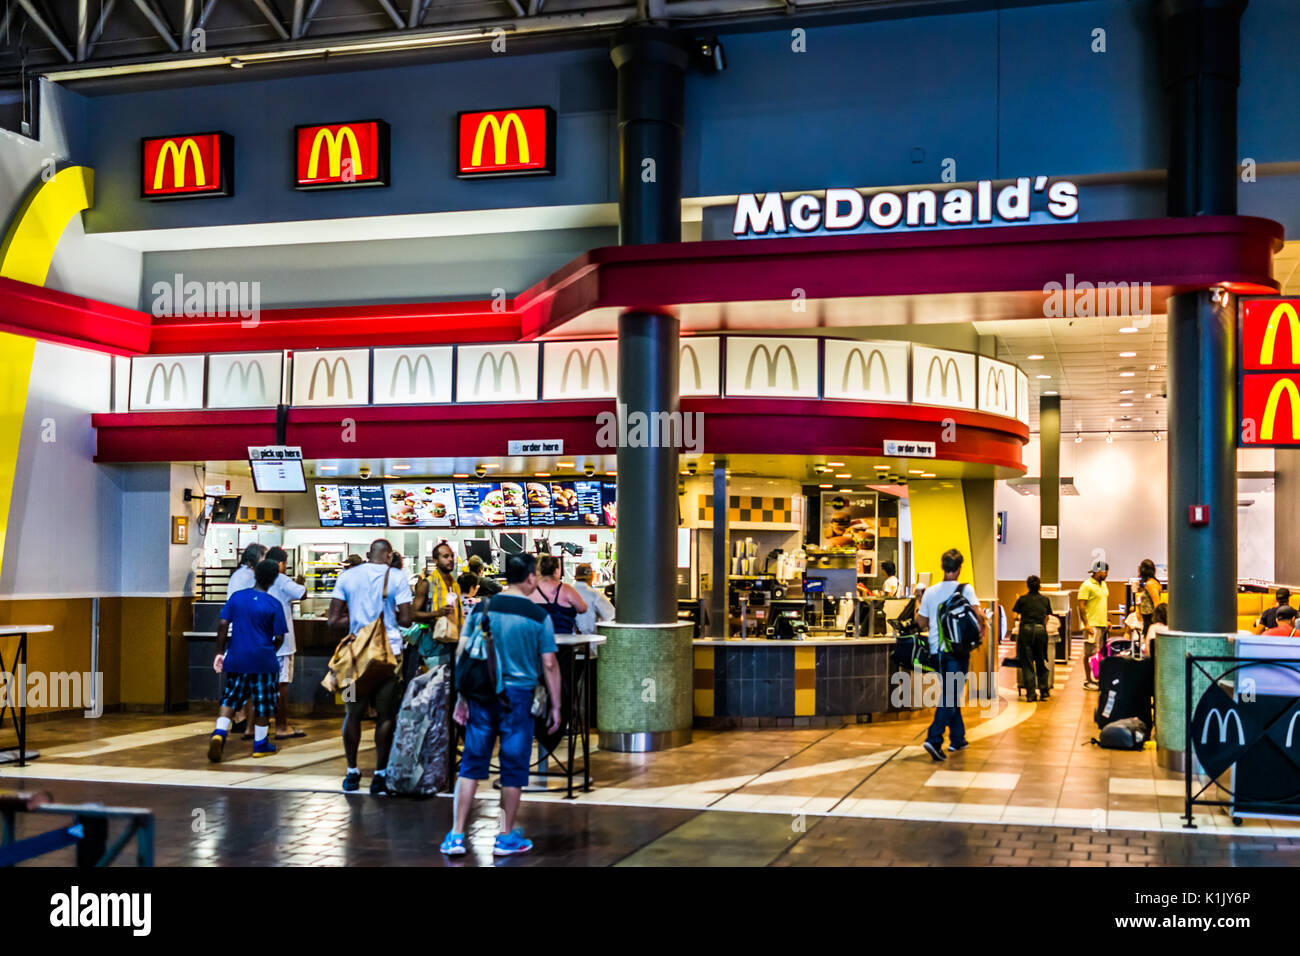 Washington DC, USA - July 1, 2017: Inside Union Station in capital city with shopping mall food court and McDonalds restaurant sign - Stock Image